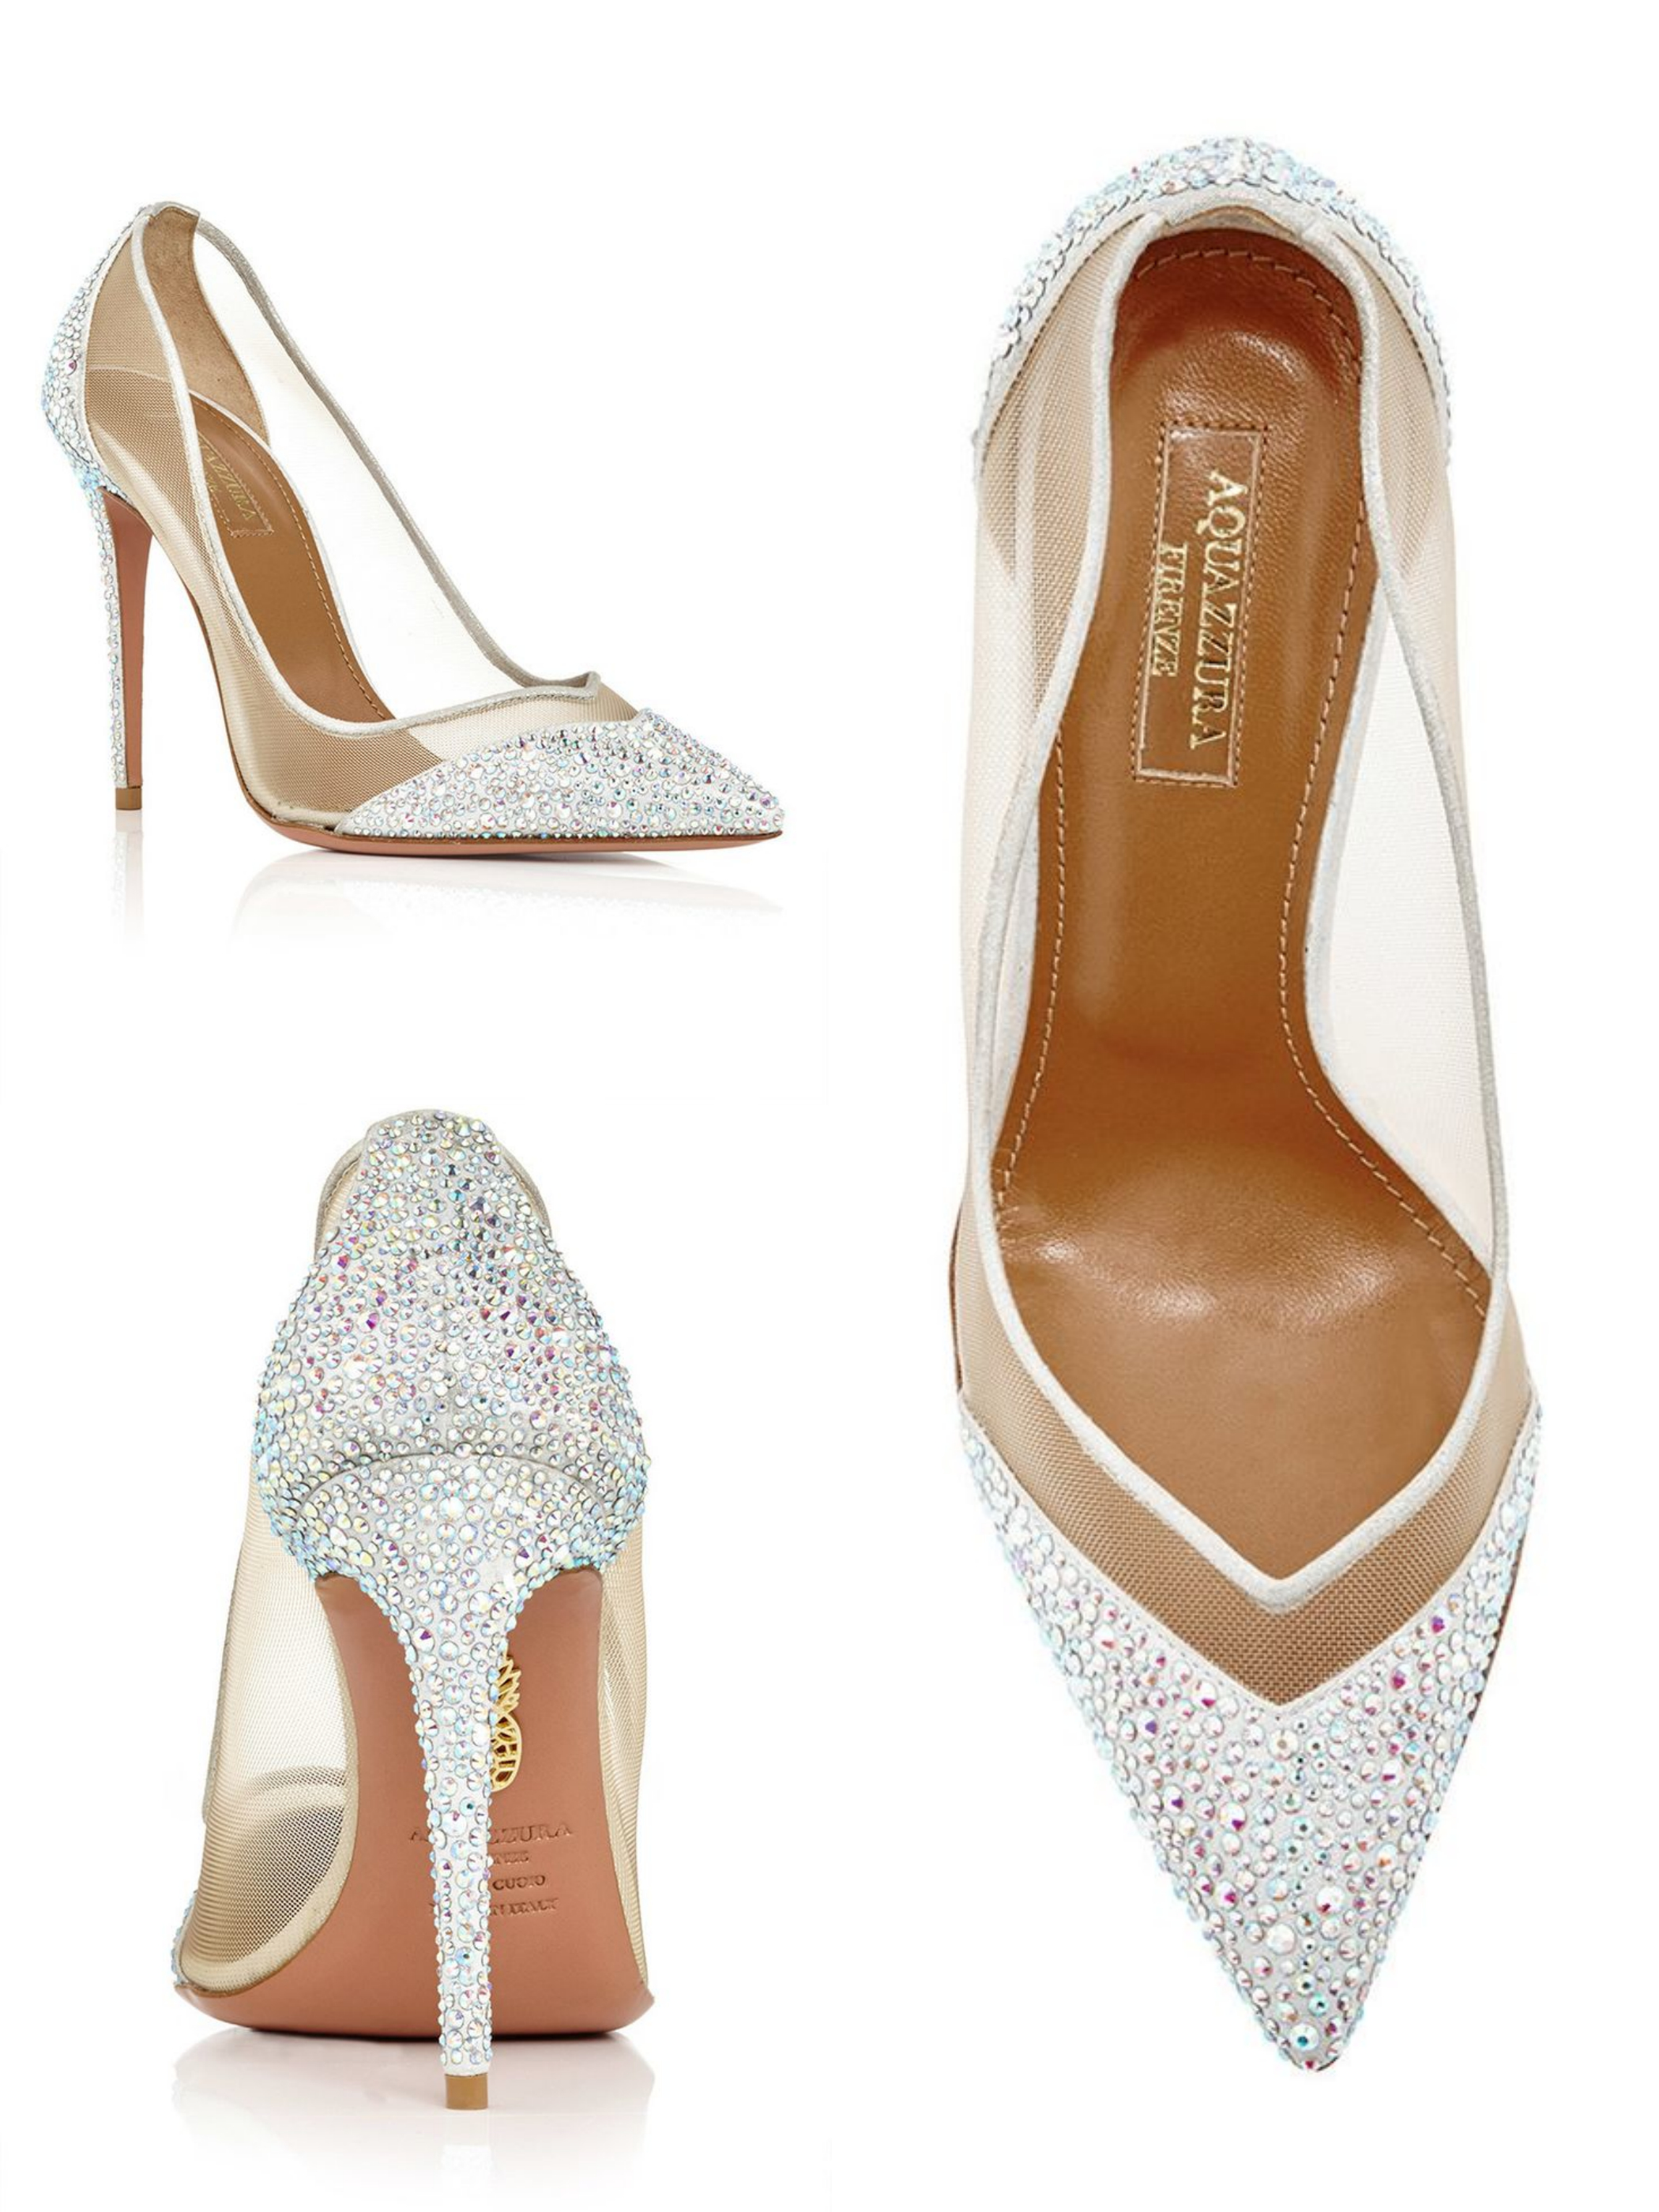 Aquazzura, Silver Nappa Leather Mesh Studded Pumps